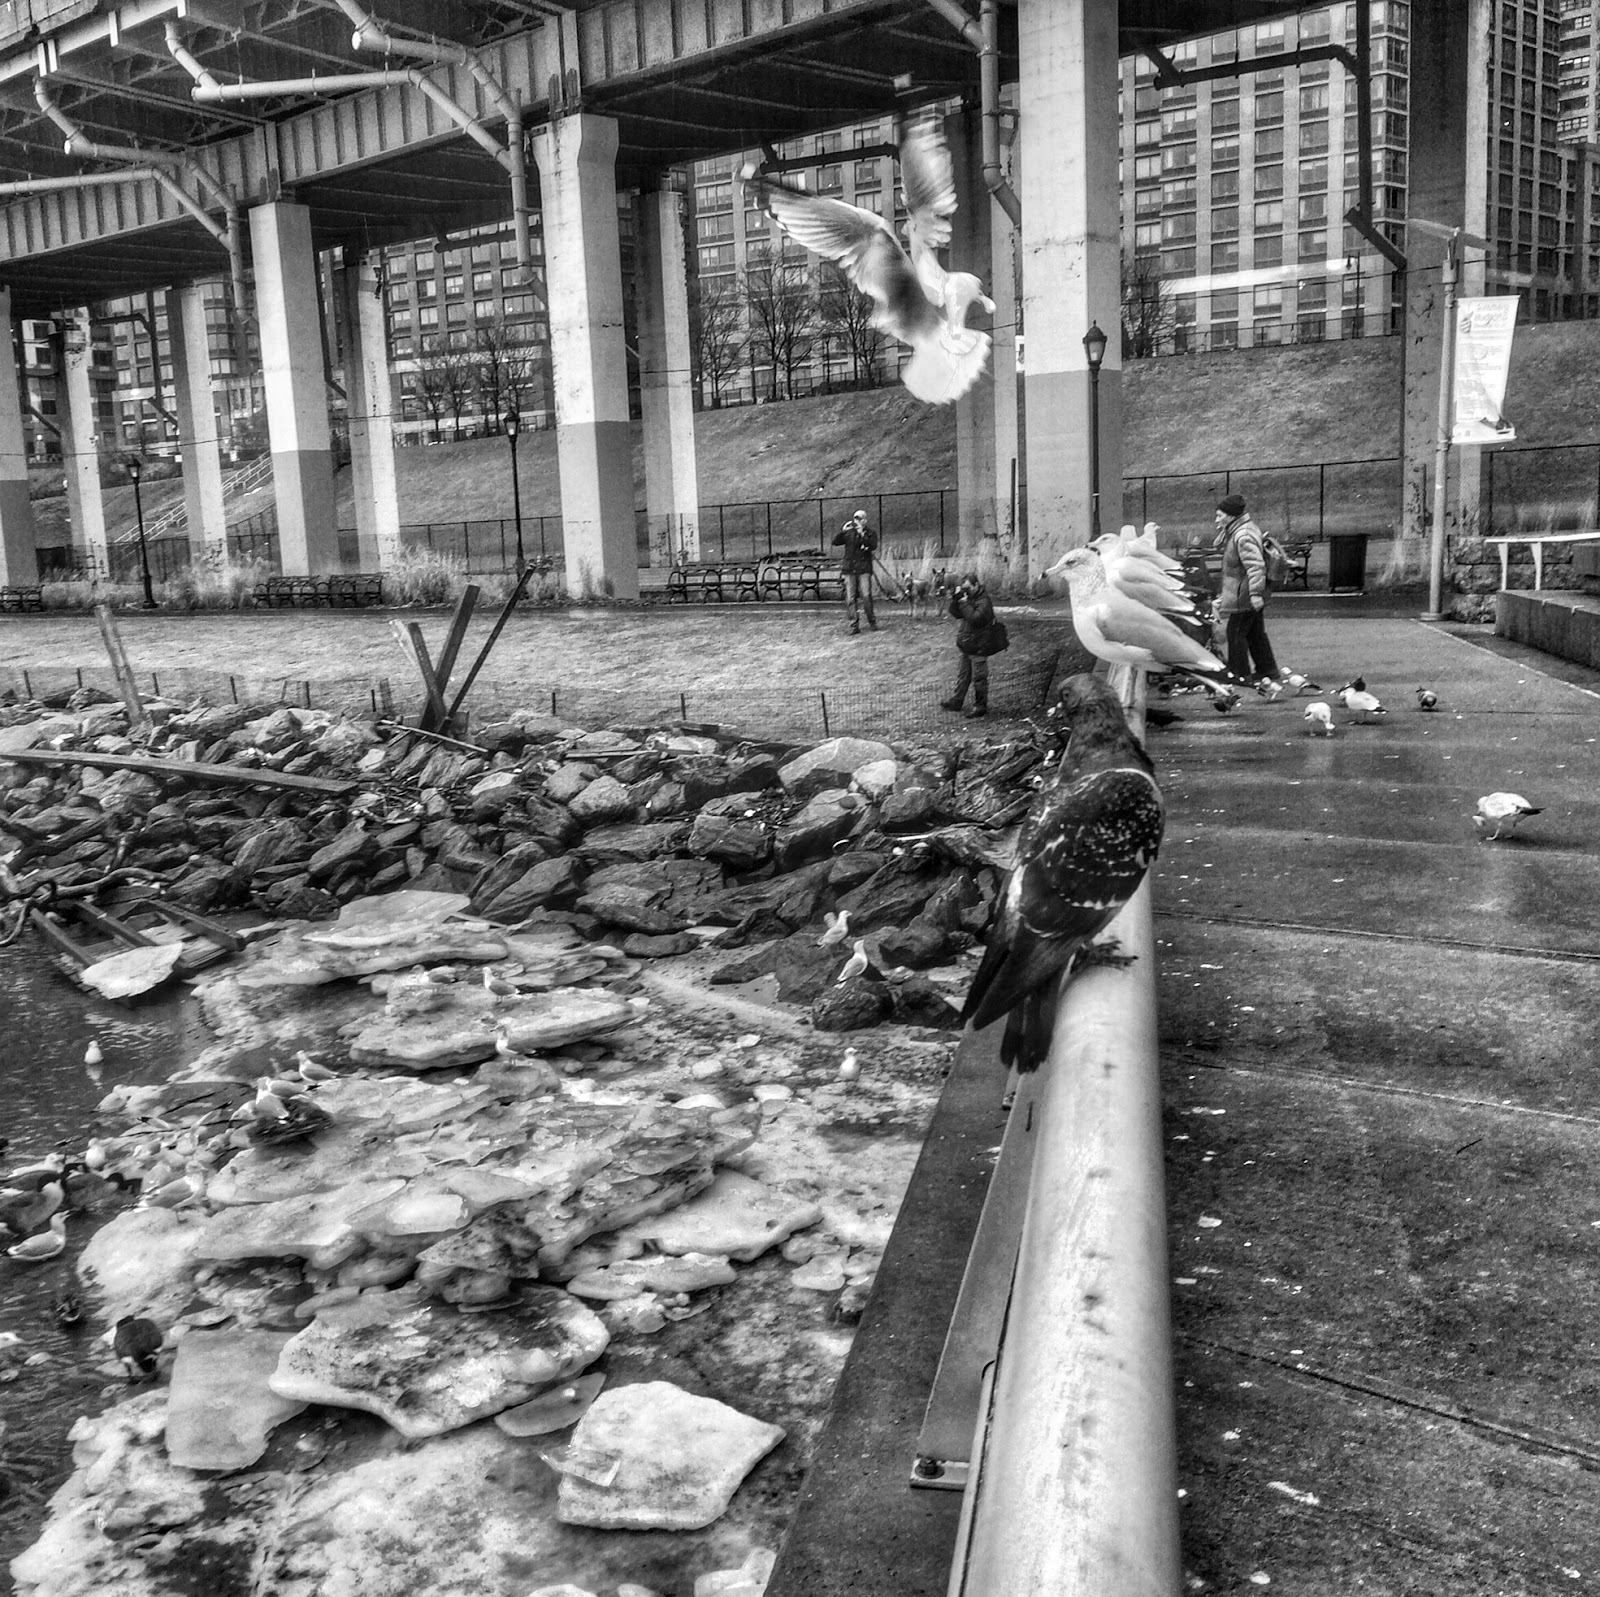 Feed the Birds, #riversidepark #birds  #seagulls #pigeons NYC 2013